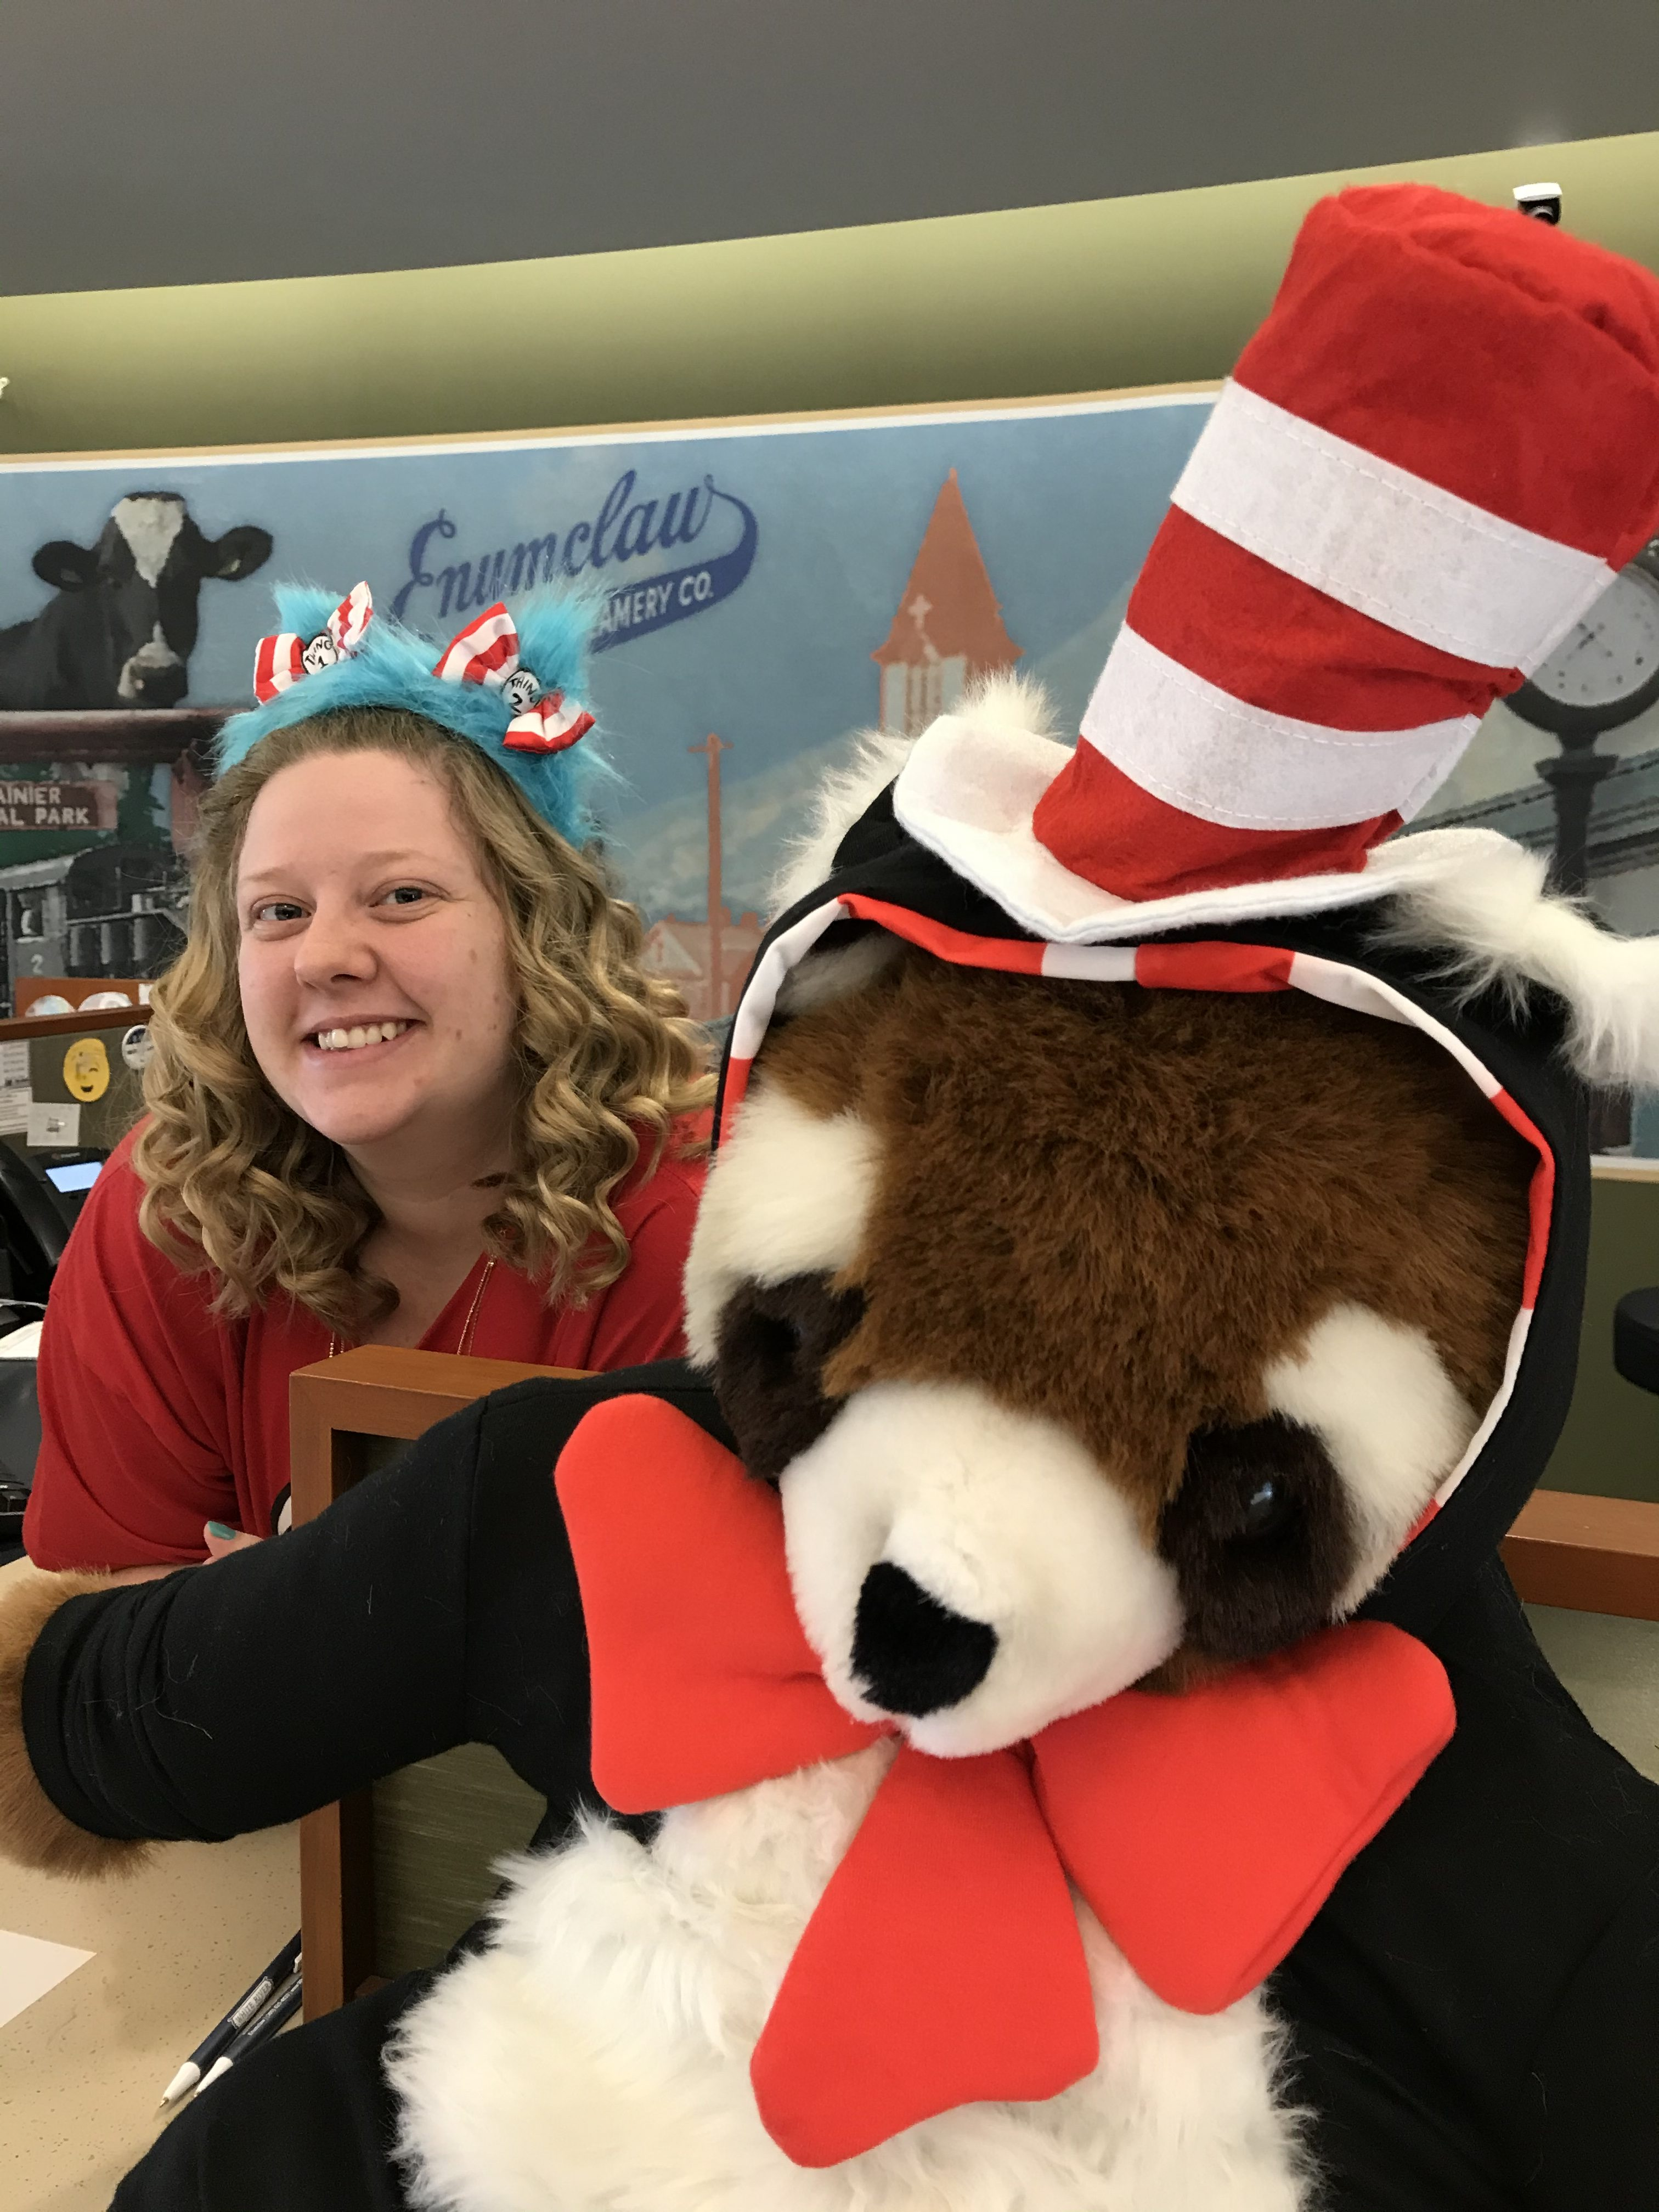 White River Credit Union employee dressed up and posing with a stuffed animal on Halloween